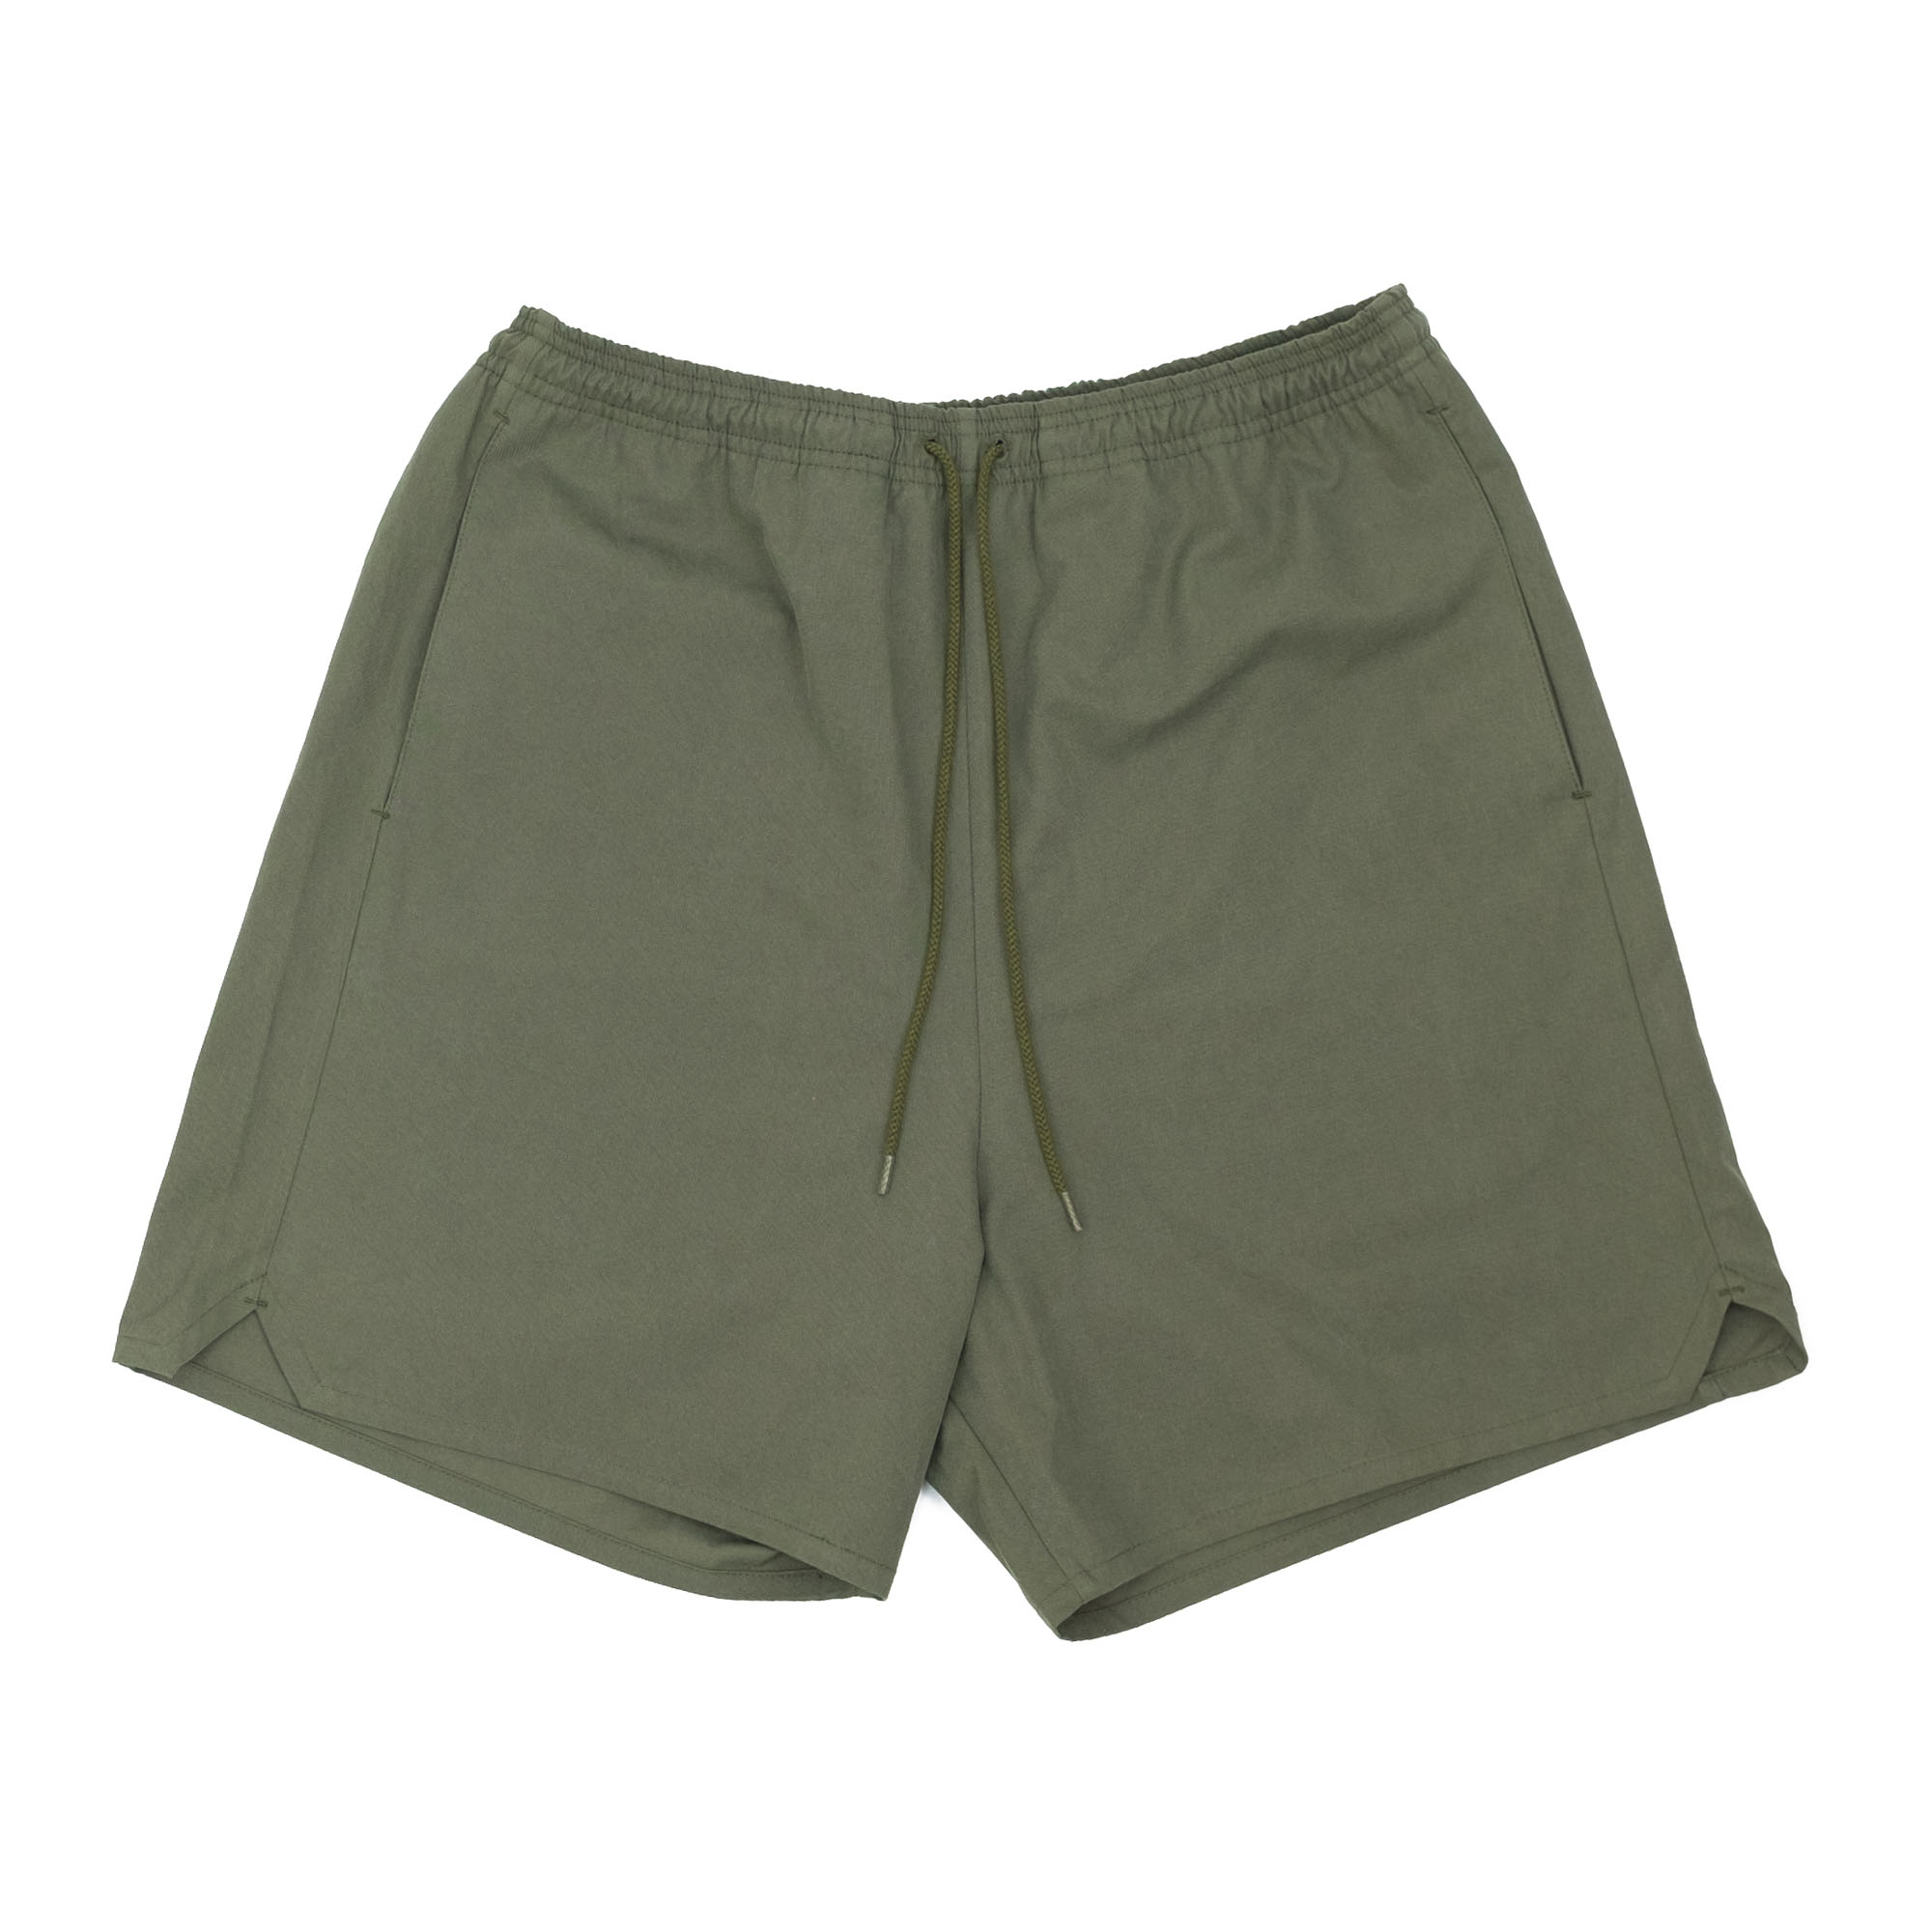 Kuro Sulfur Dyed NIDOM Training Shorts - Khaki